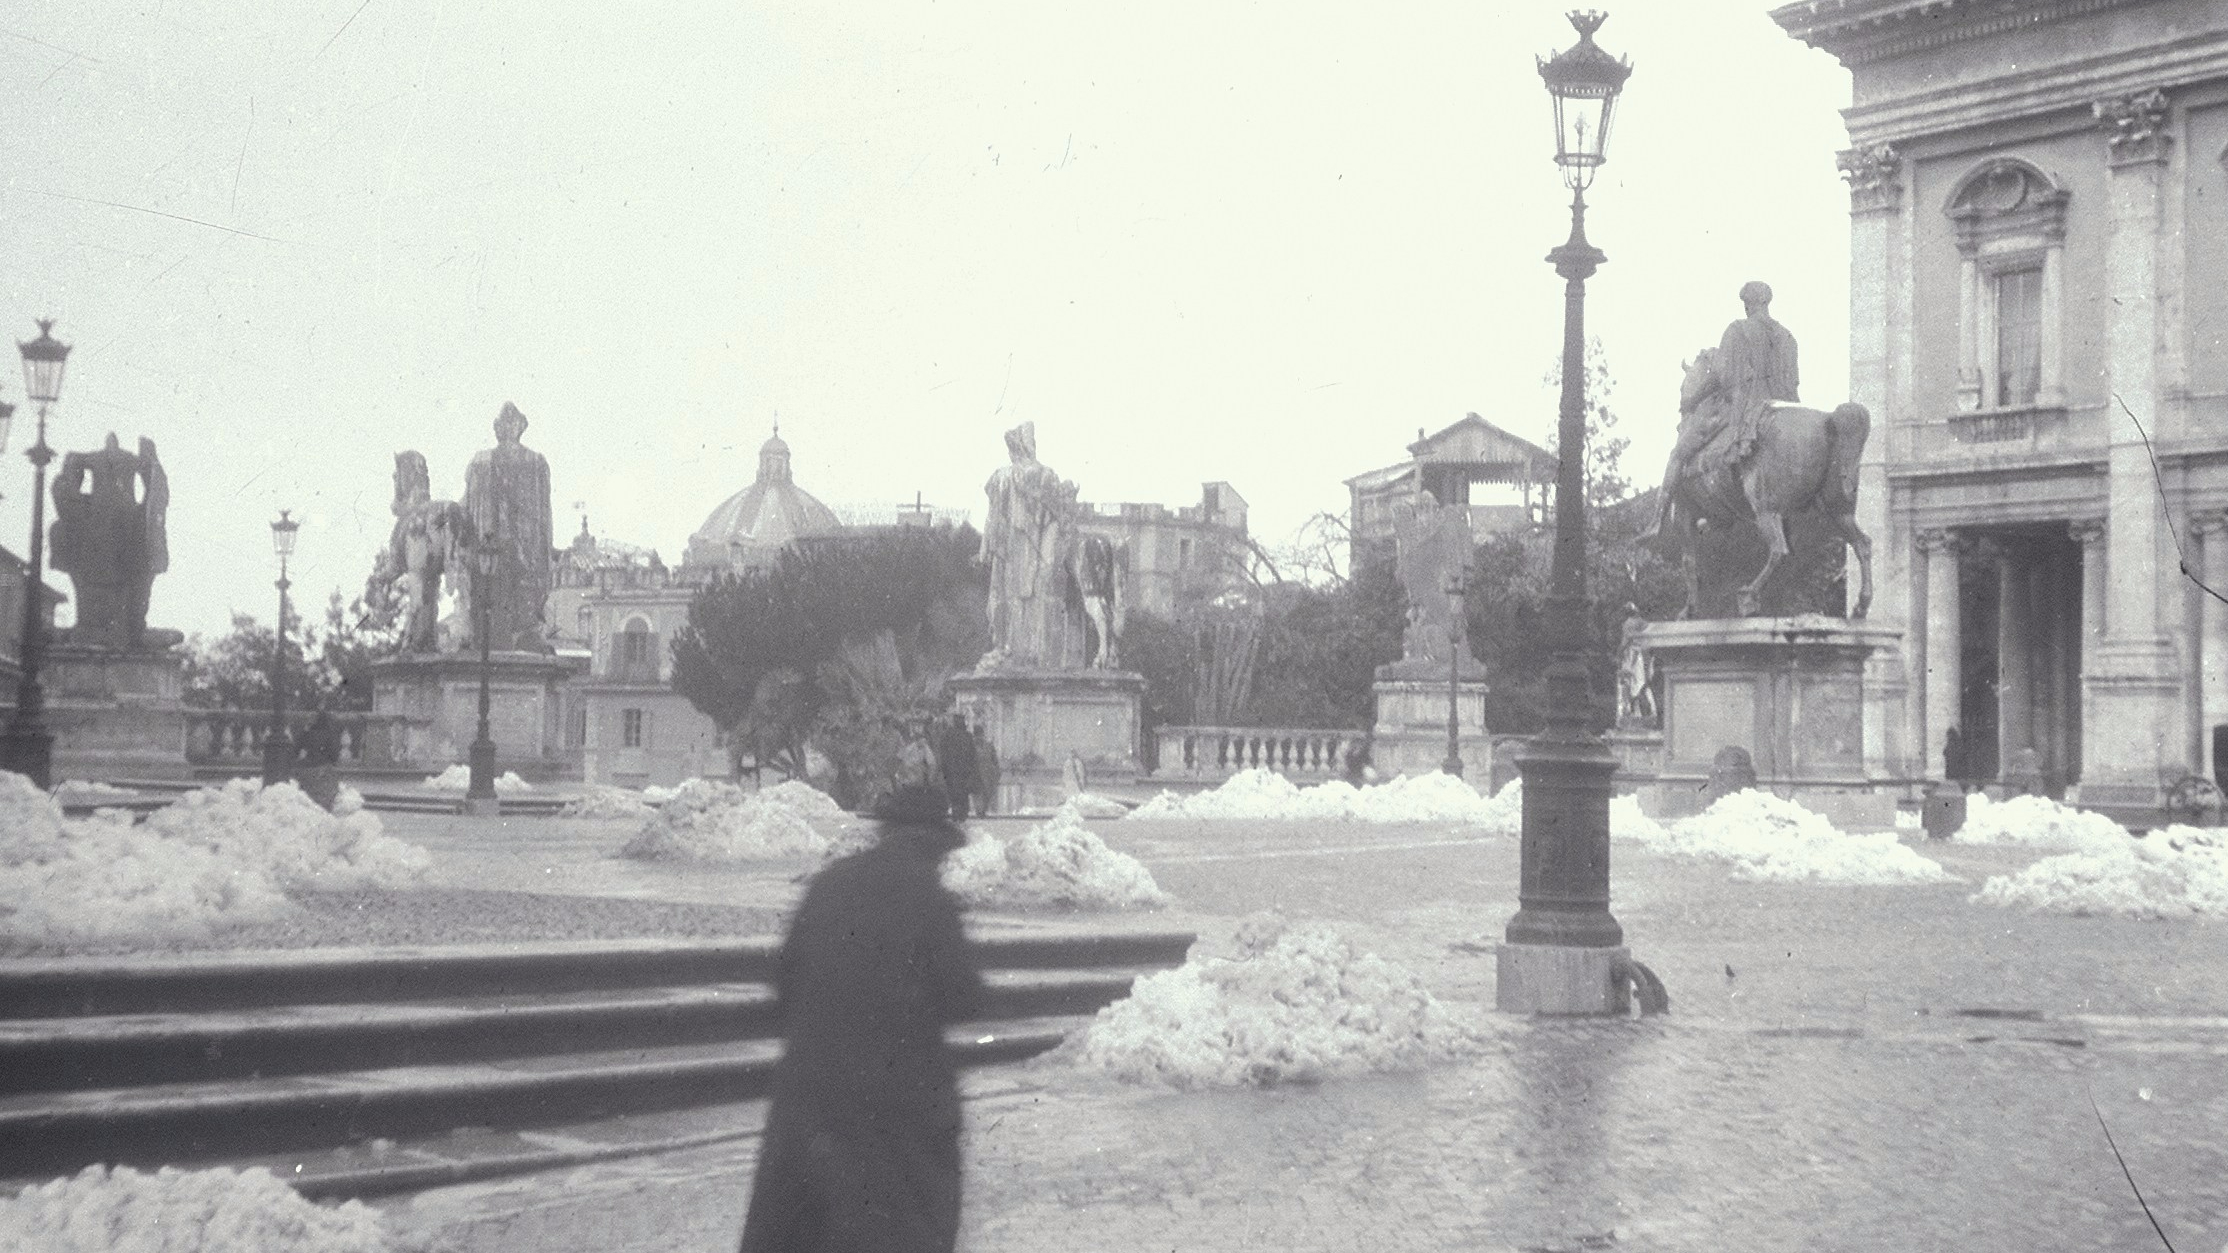 Thomas Ashby, Capitoline Hill (1901)